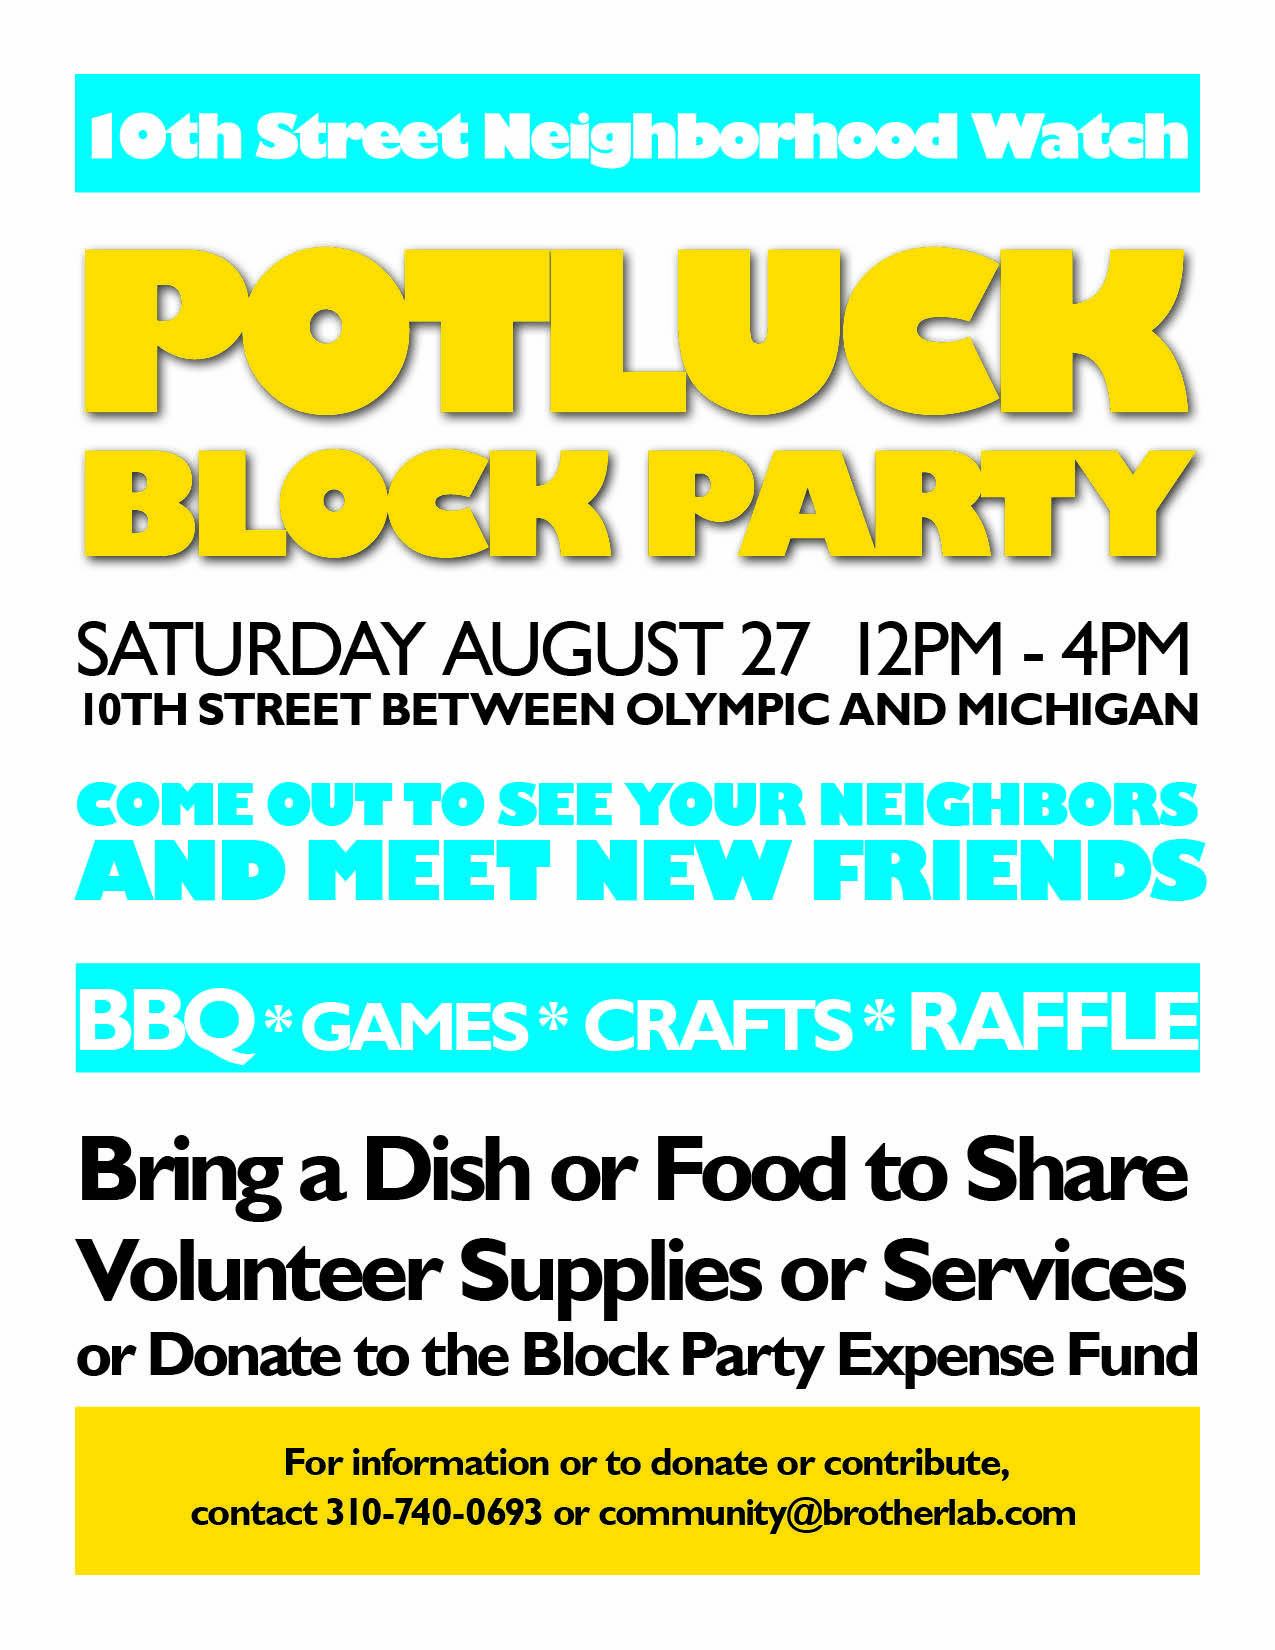 Block party invite wording google search block party pinterest block party invite wording google search stopboris Image collections